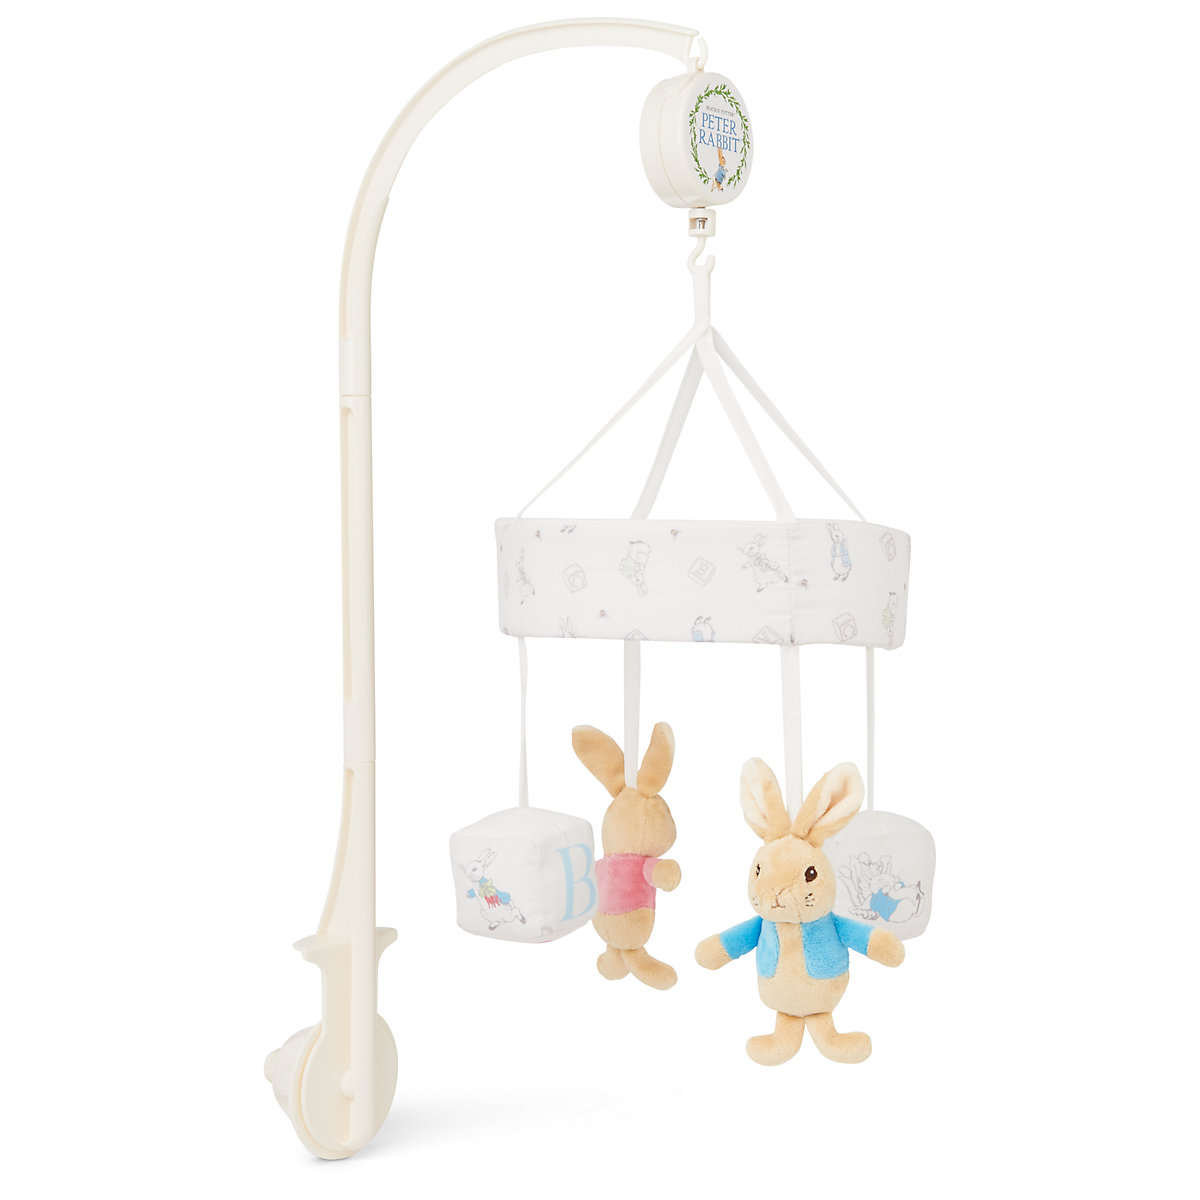 New ELC Beatrix Potter Peter Rabbit Mobile Toy - Beatrix Potter Gifts